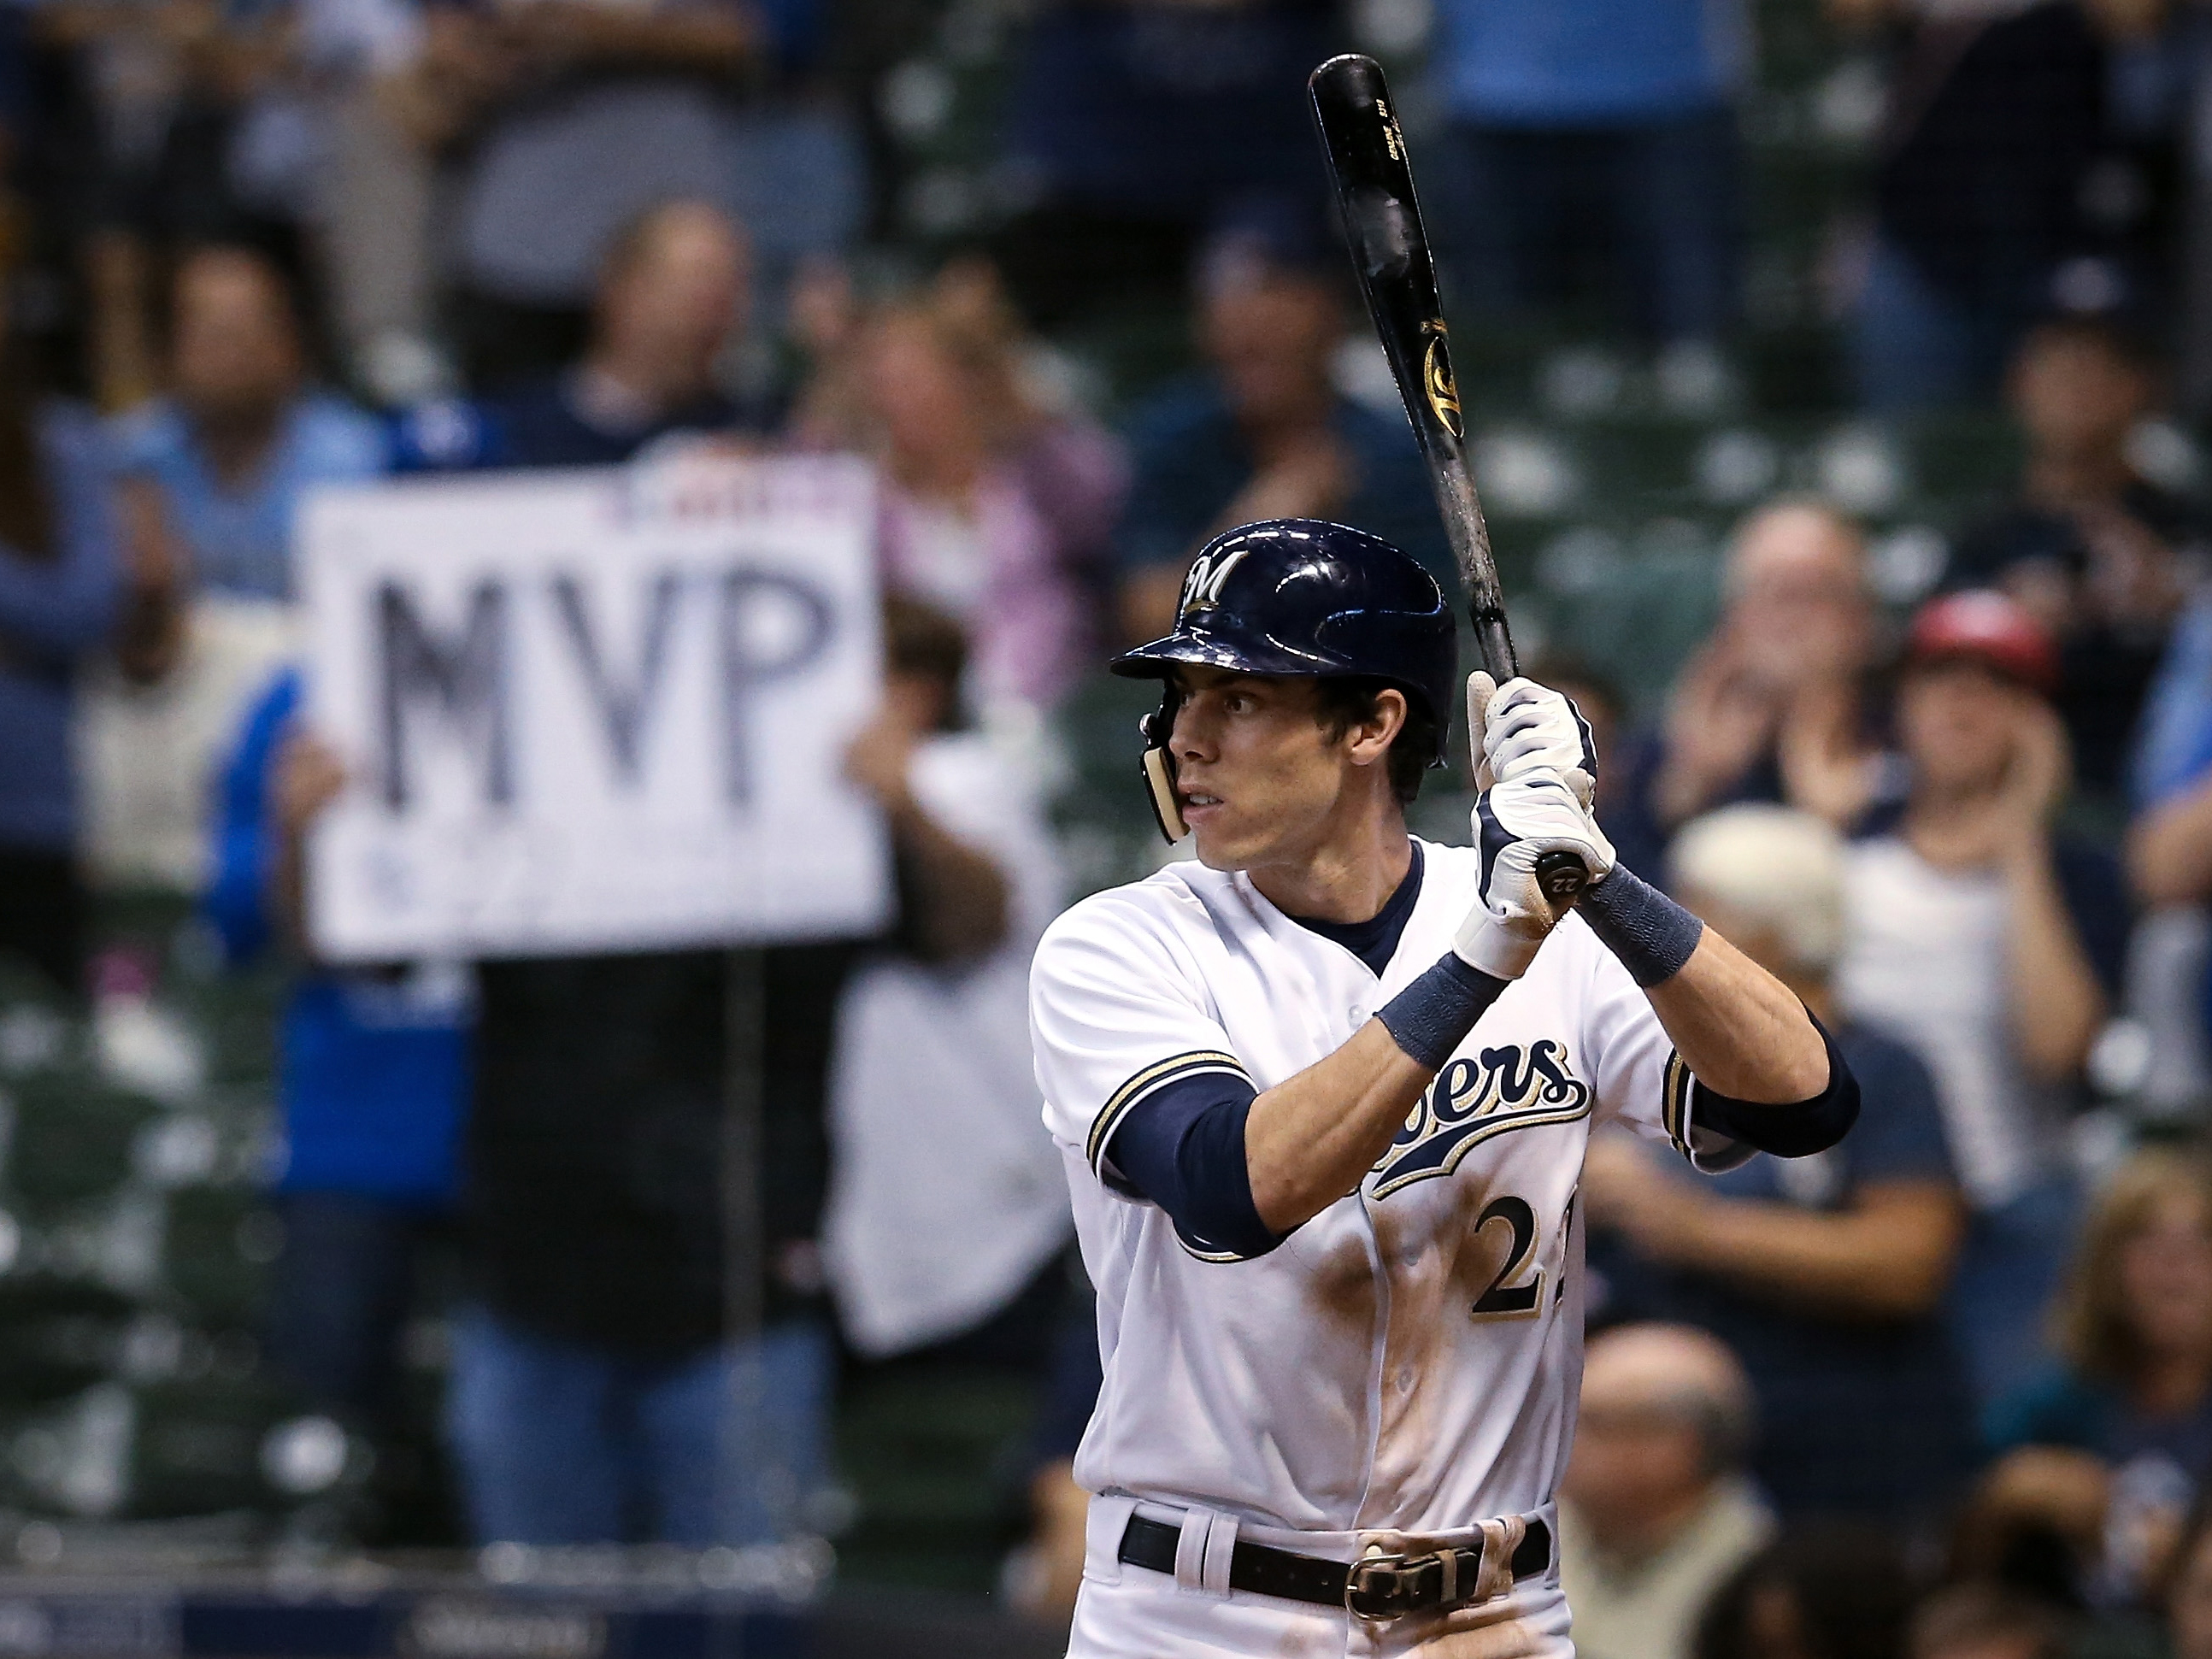 Christian Yelich Isn't Even Trying To Hit Home Runs ... Christian Yelich